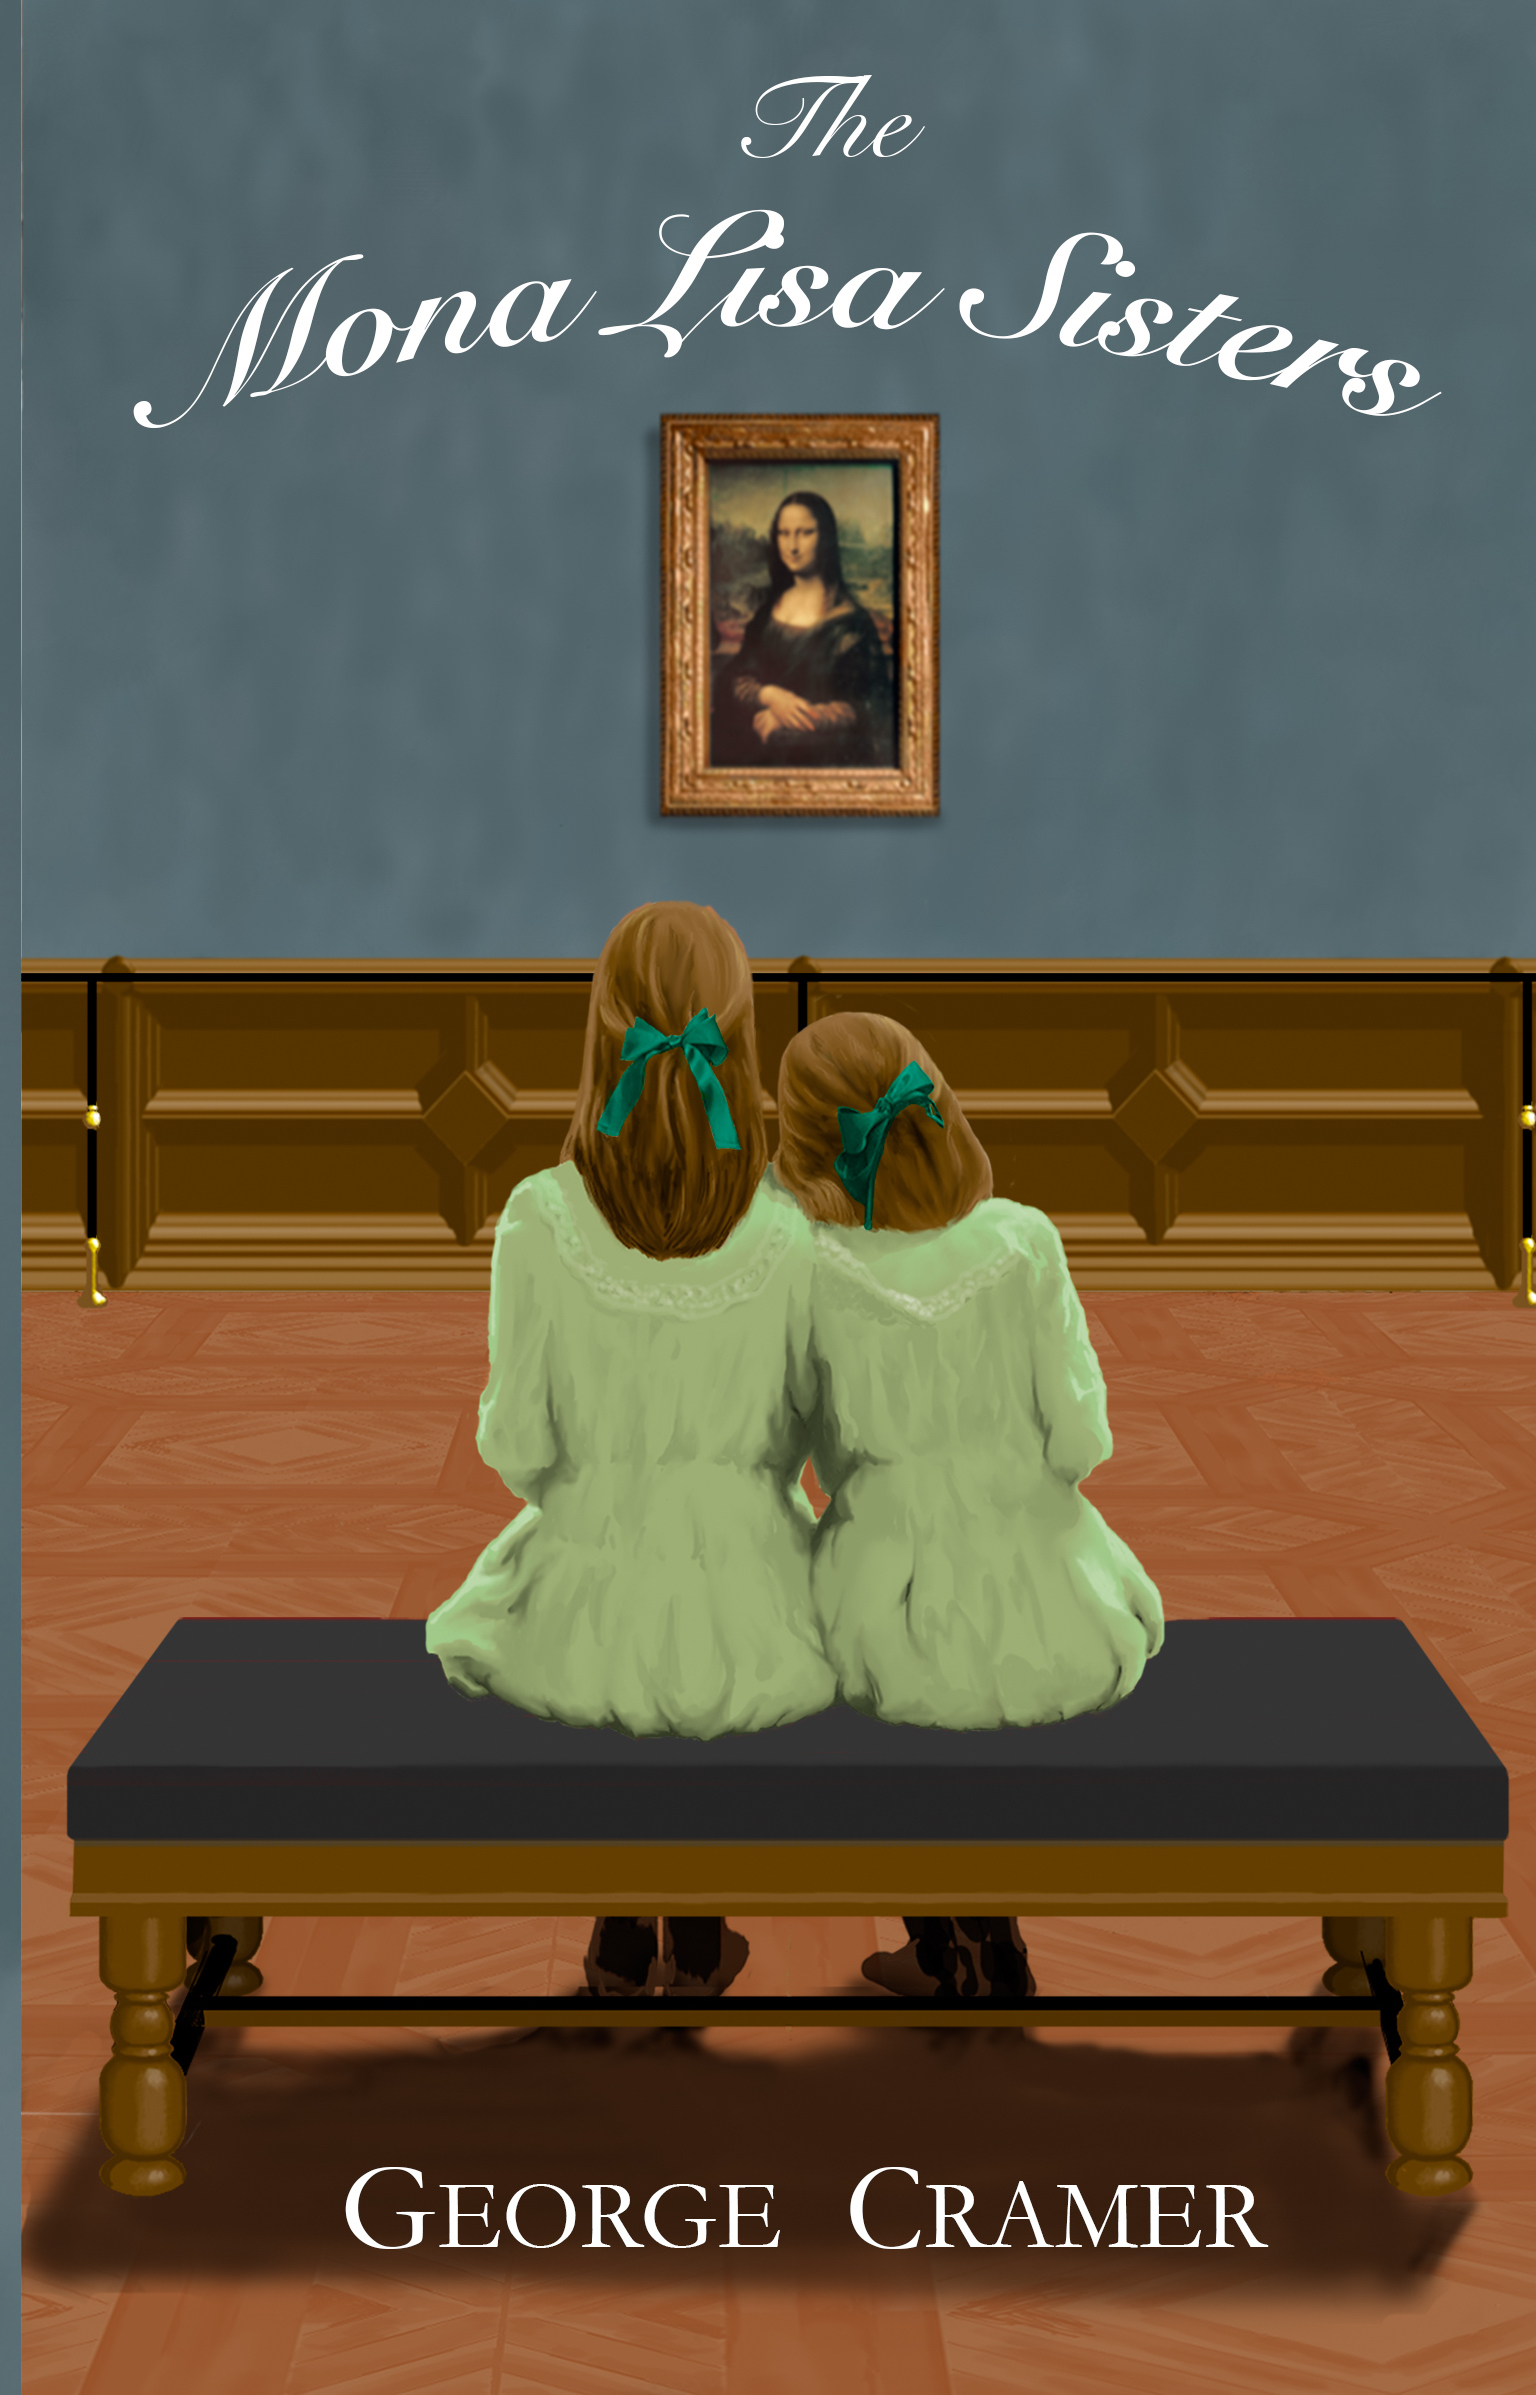 The Mona Lisa Sisters